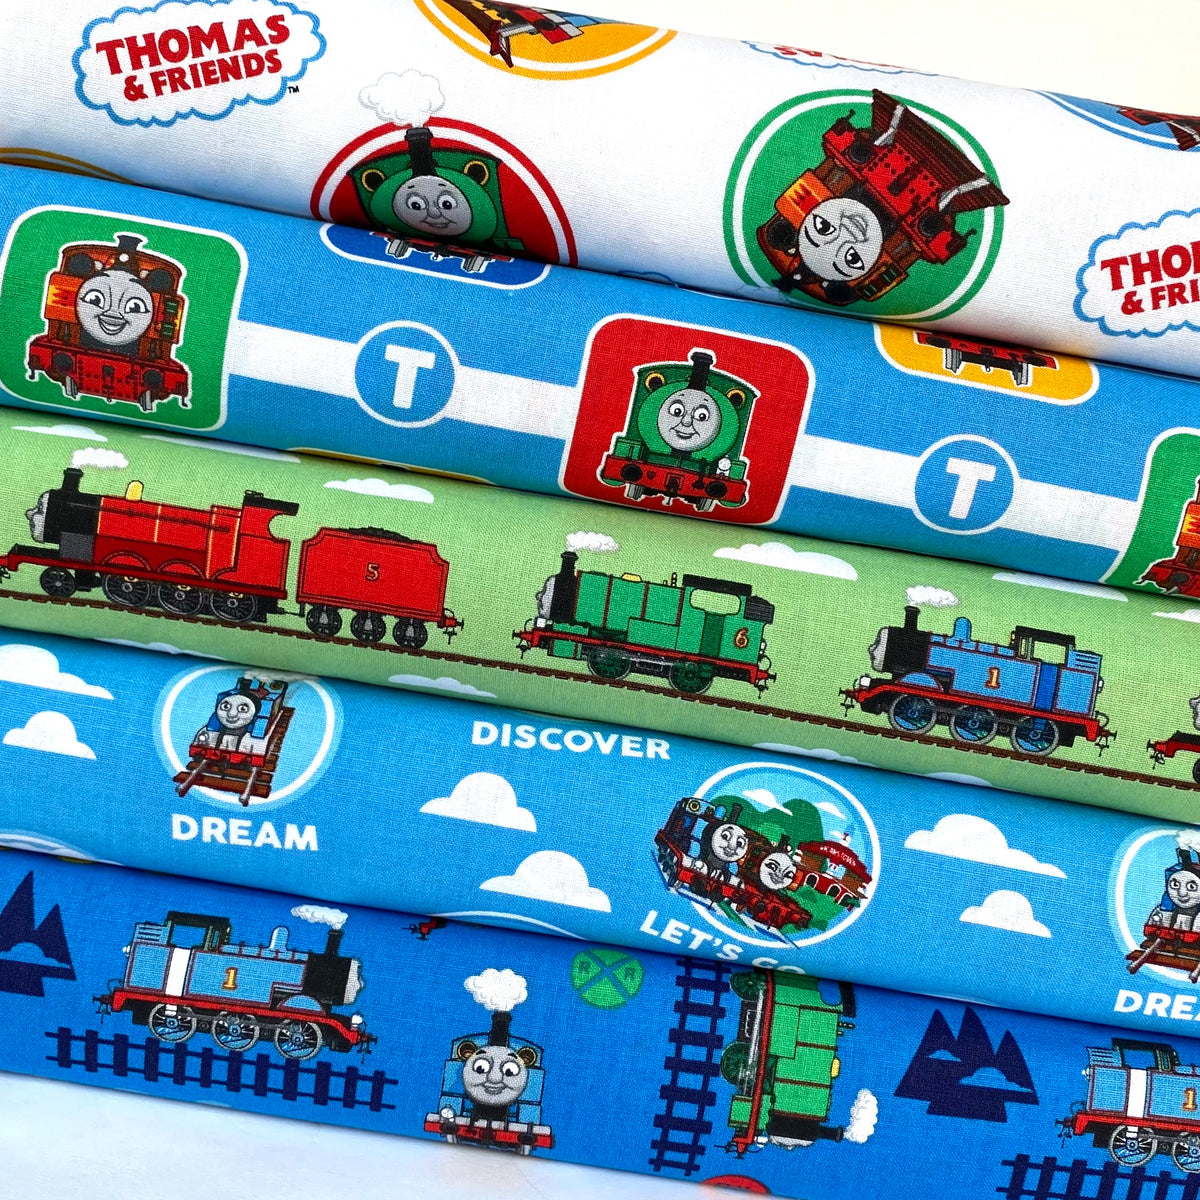 Thomas The Tank Engine, 5 piece fat quarter bundle, 100% cotton